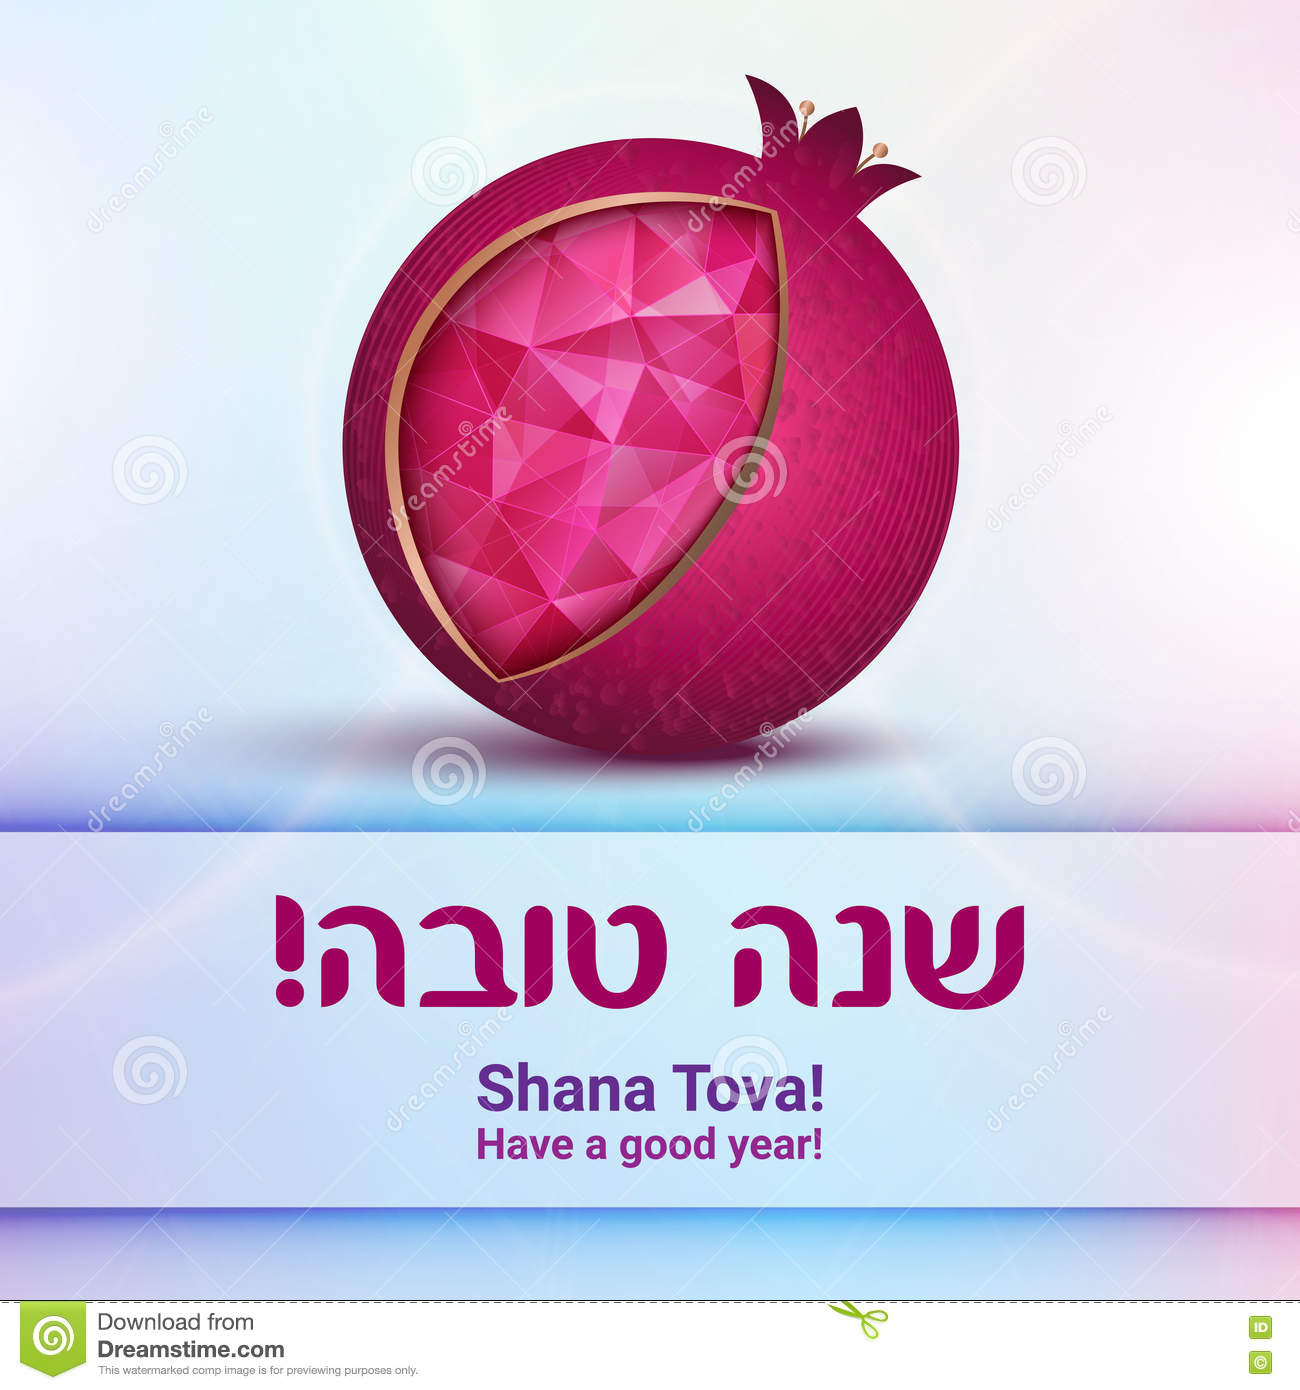 Jewish new year greeting cards image collections greeting card rosh hashana jewish new year greeting card stock vector rosh hashana jewish new year greeting card kristyandbryce Gallery